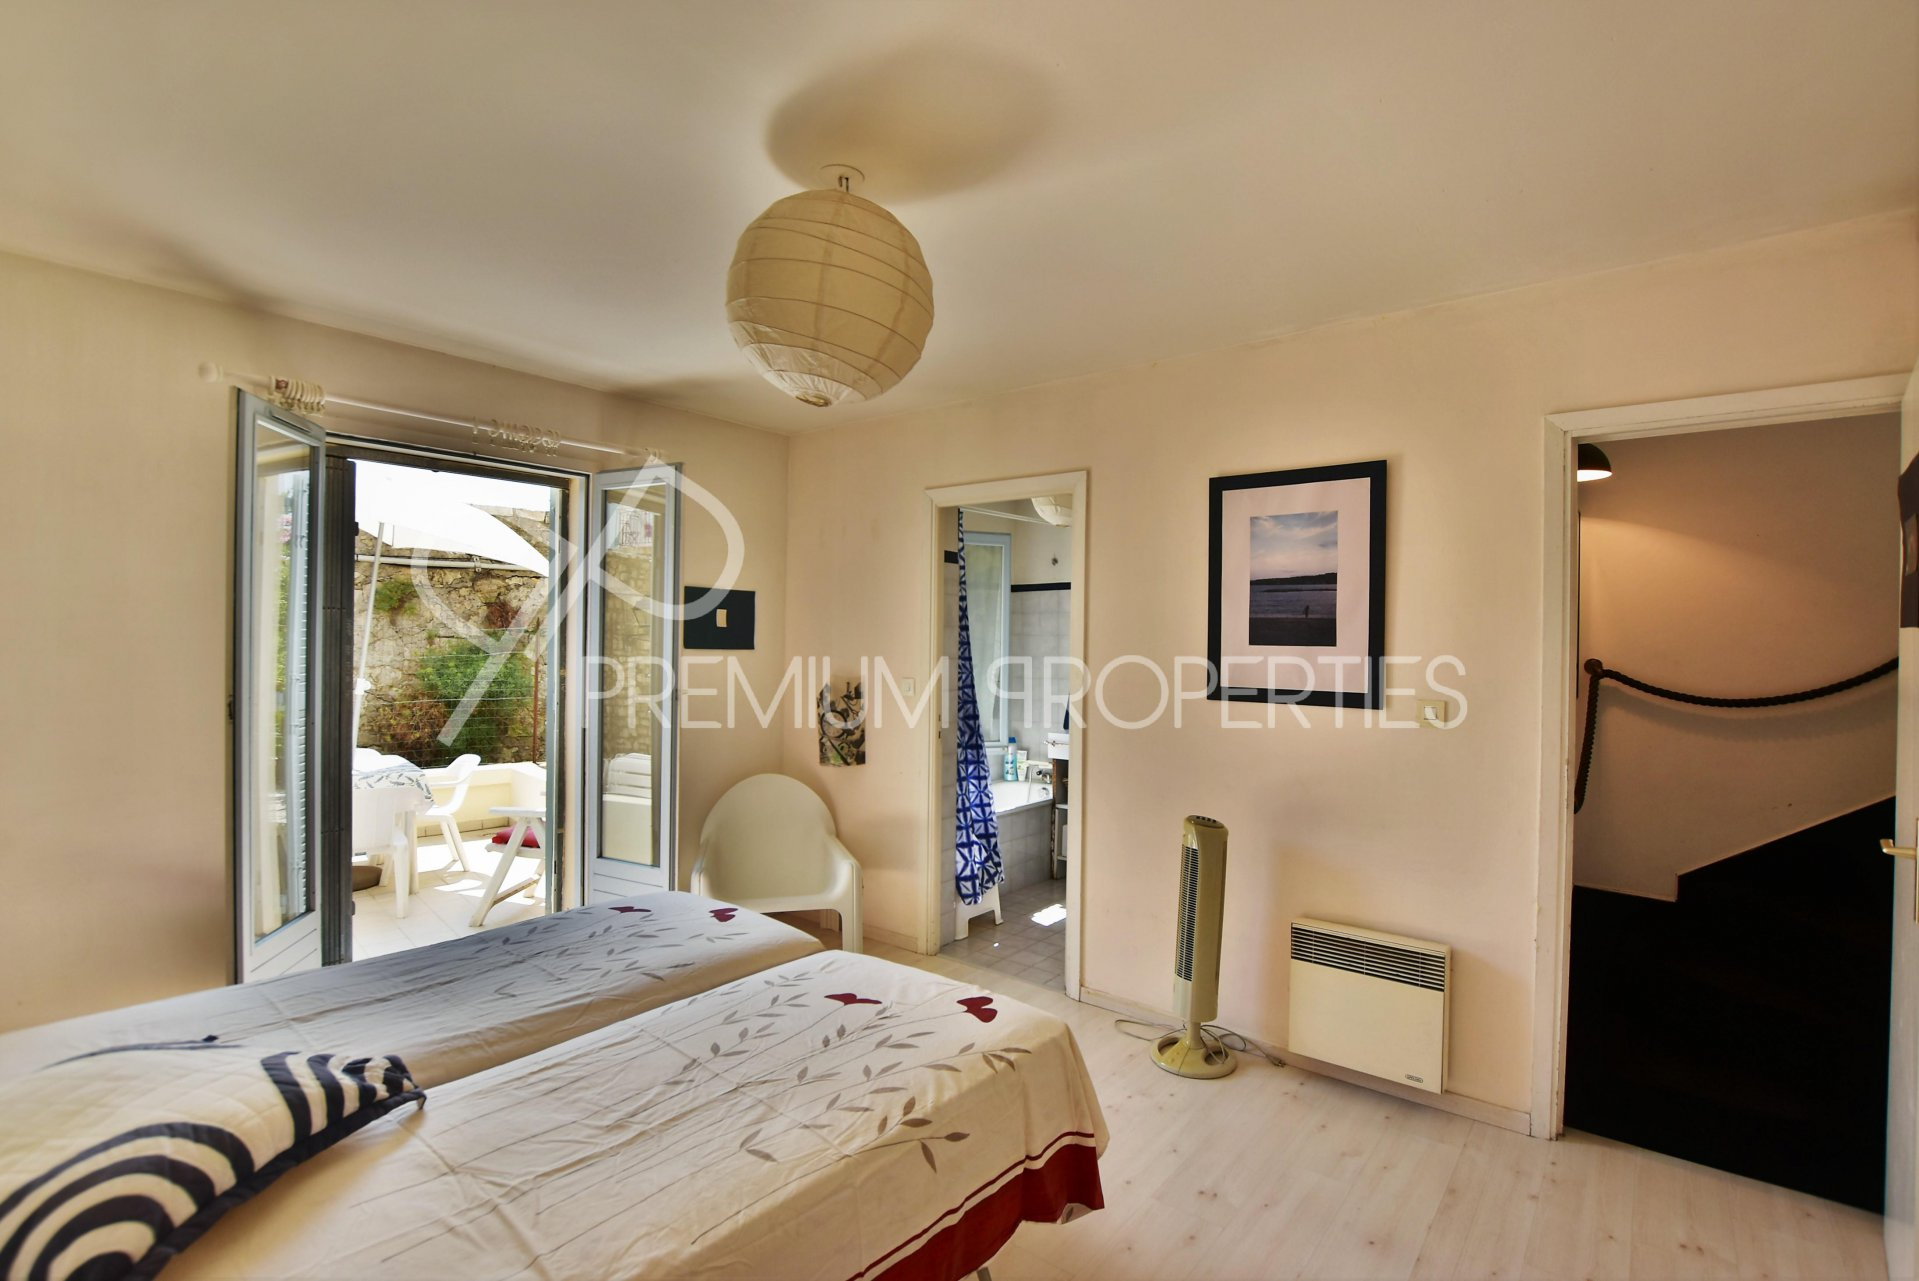 ANTIBES REMPARTS - DUPLEX WITH SEA VIEW AND TERRACE